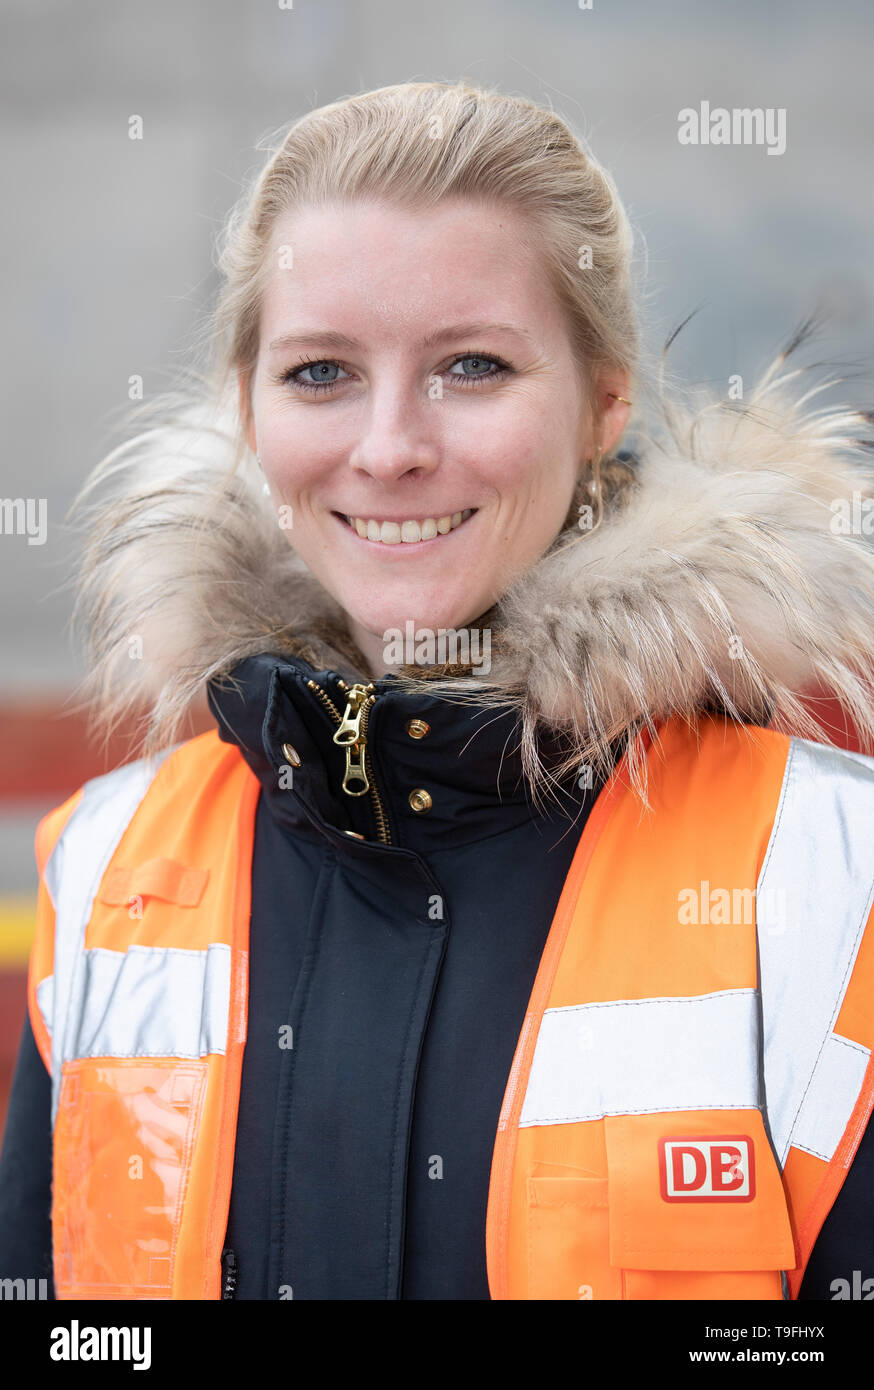 07 May 2019, Lower Saxony, Osnabrück: Johanna Harten, civil engineer at Deutsche Bahn (DB), is standing in front of a new bridge section. Since January 2017, Deutsche Bahn has been working on the renewal of a railway bridge in Osnabrück, which is to be completed in October of this year. Photo: Friso Gentsch/dpa - Stock Image